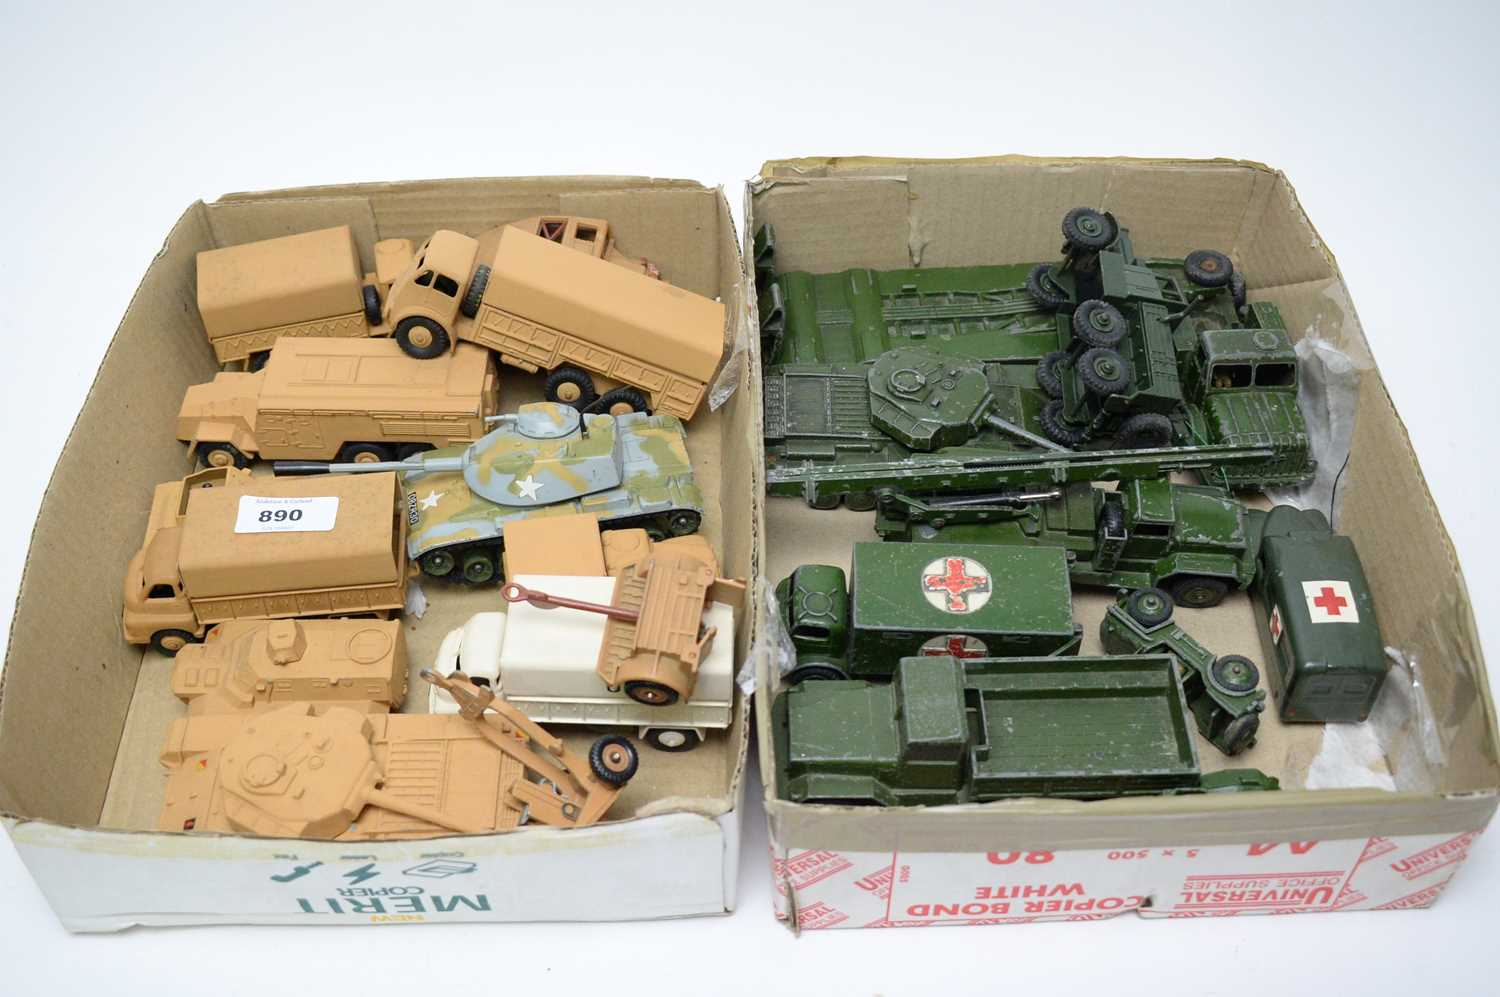 Lot 890 - Military diecast model vehicles.